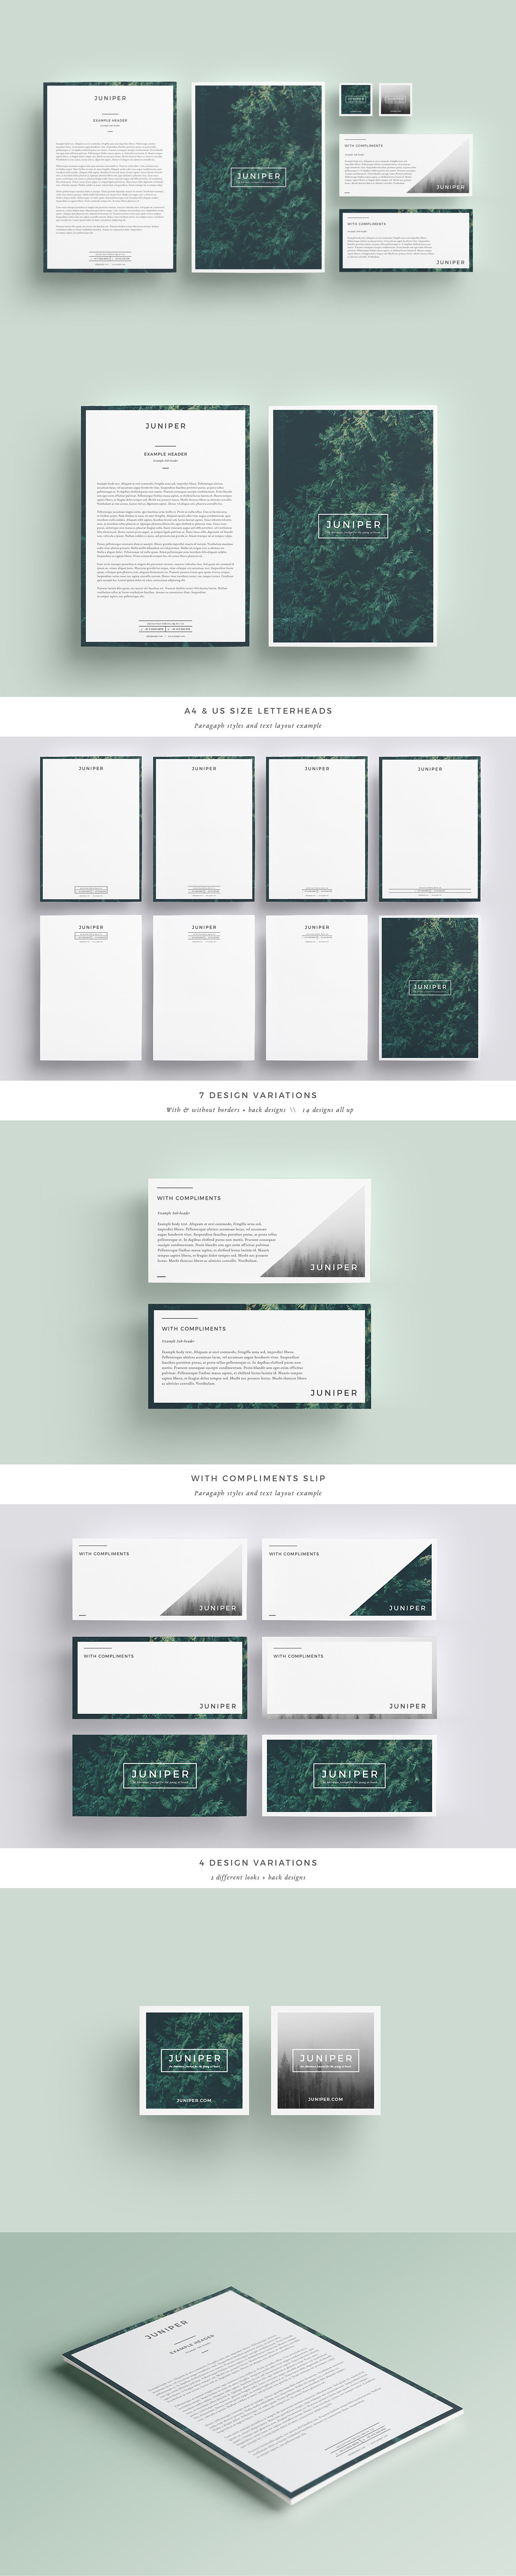 J U N I P E R Letterhead With Comps By Fortysixandtwo On Envato Elements Business Cards Creative Templates Letterhead Letterhead Design